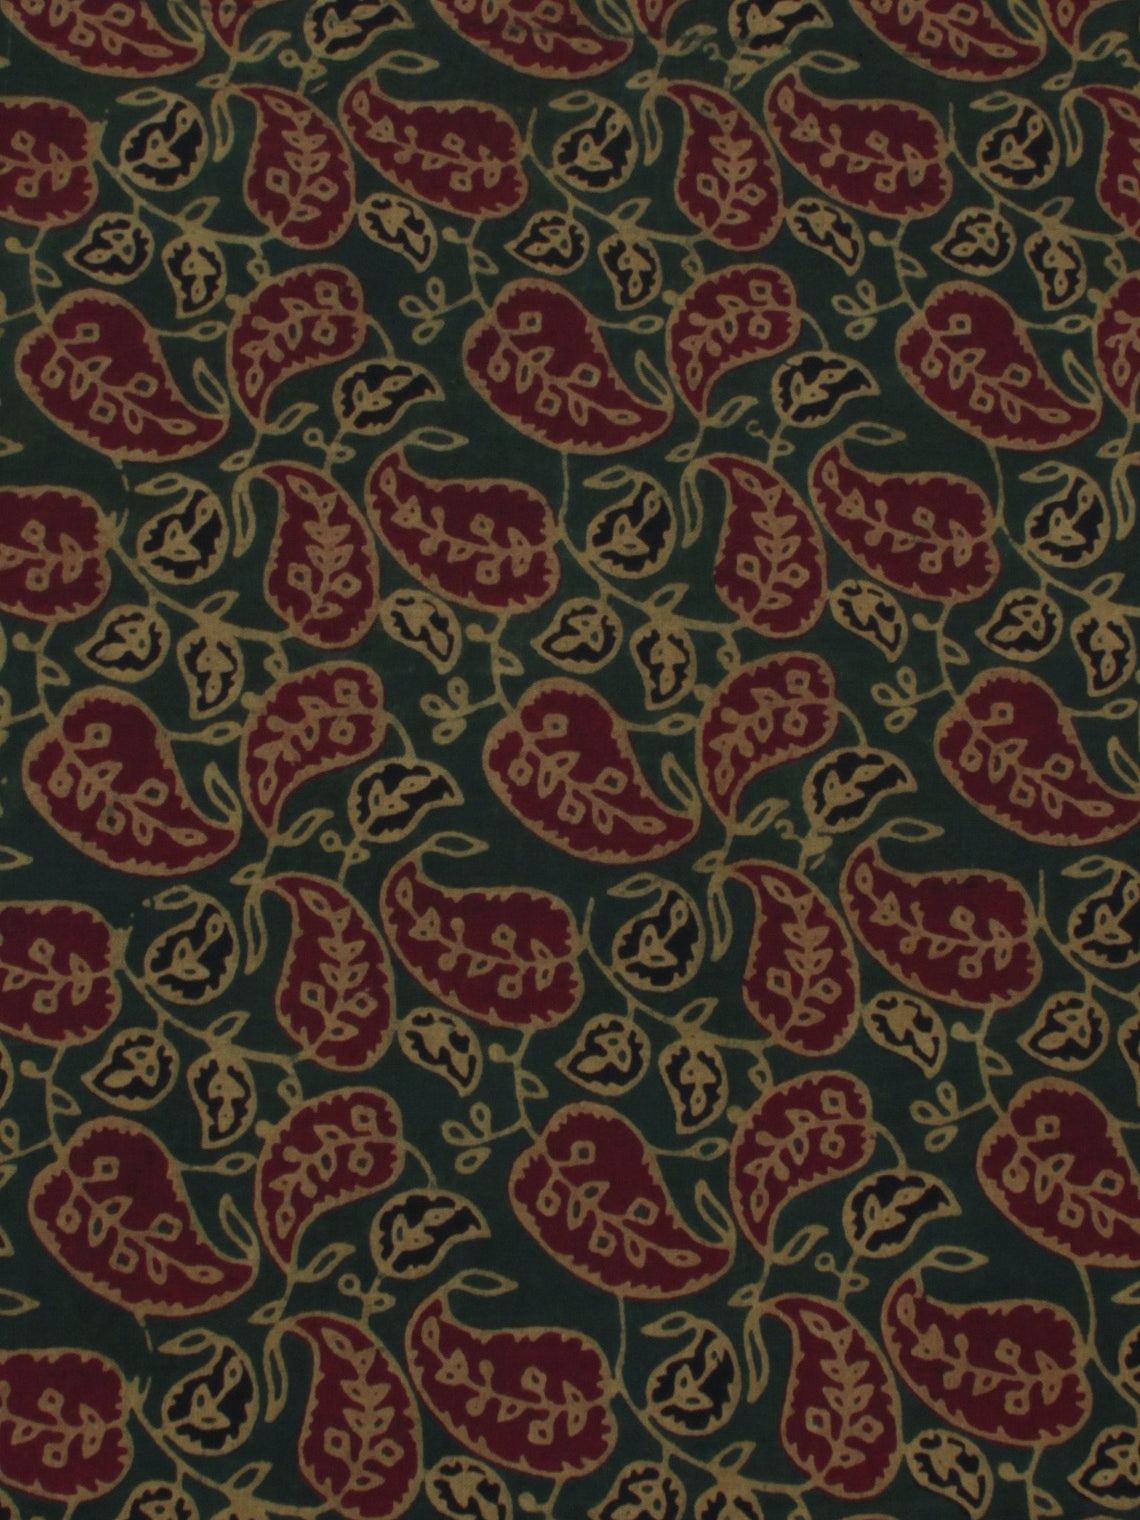 Dark Green Maroon Beige Ajrakh Block Printed Cotton Fabric Per Meter - F0916675